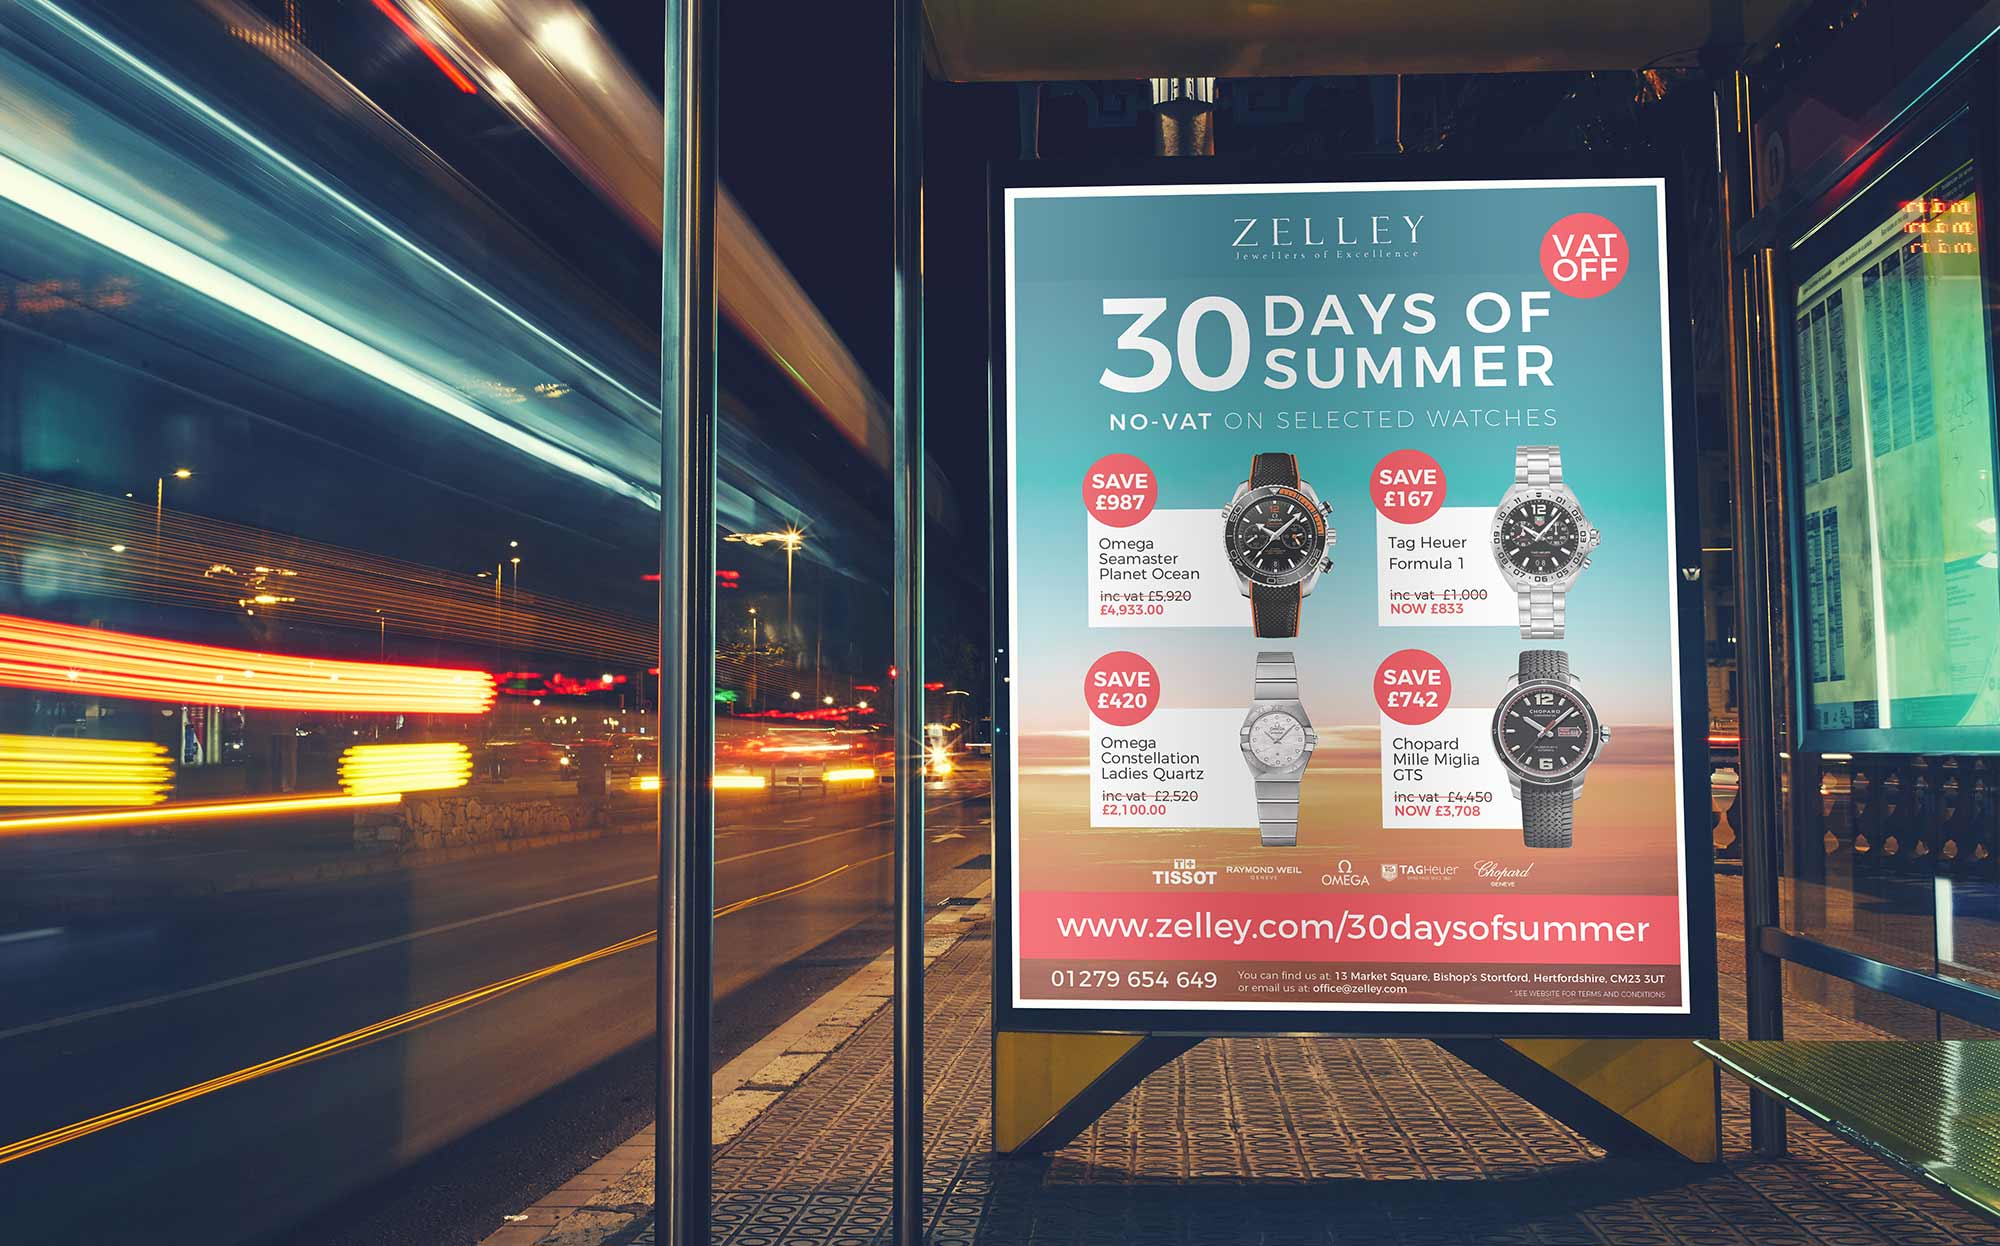 30 Days of Summer Bus Advert